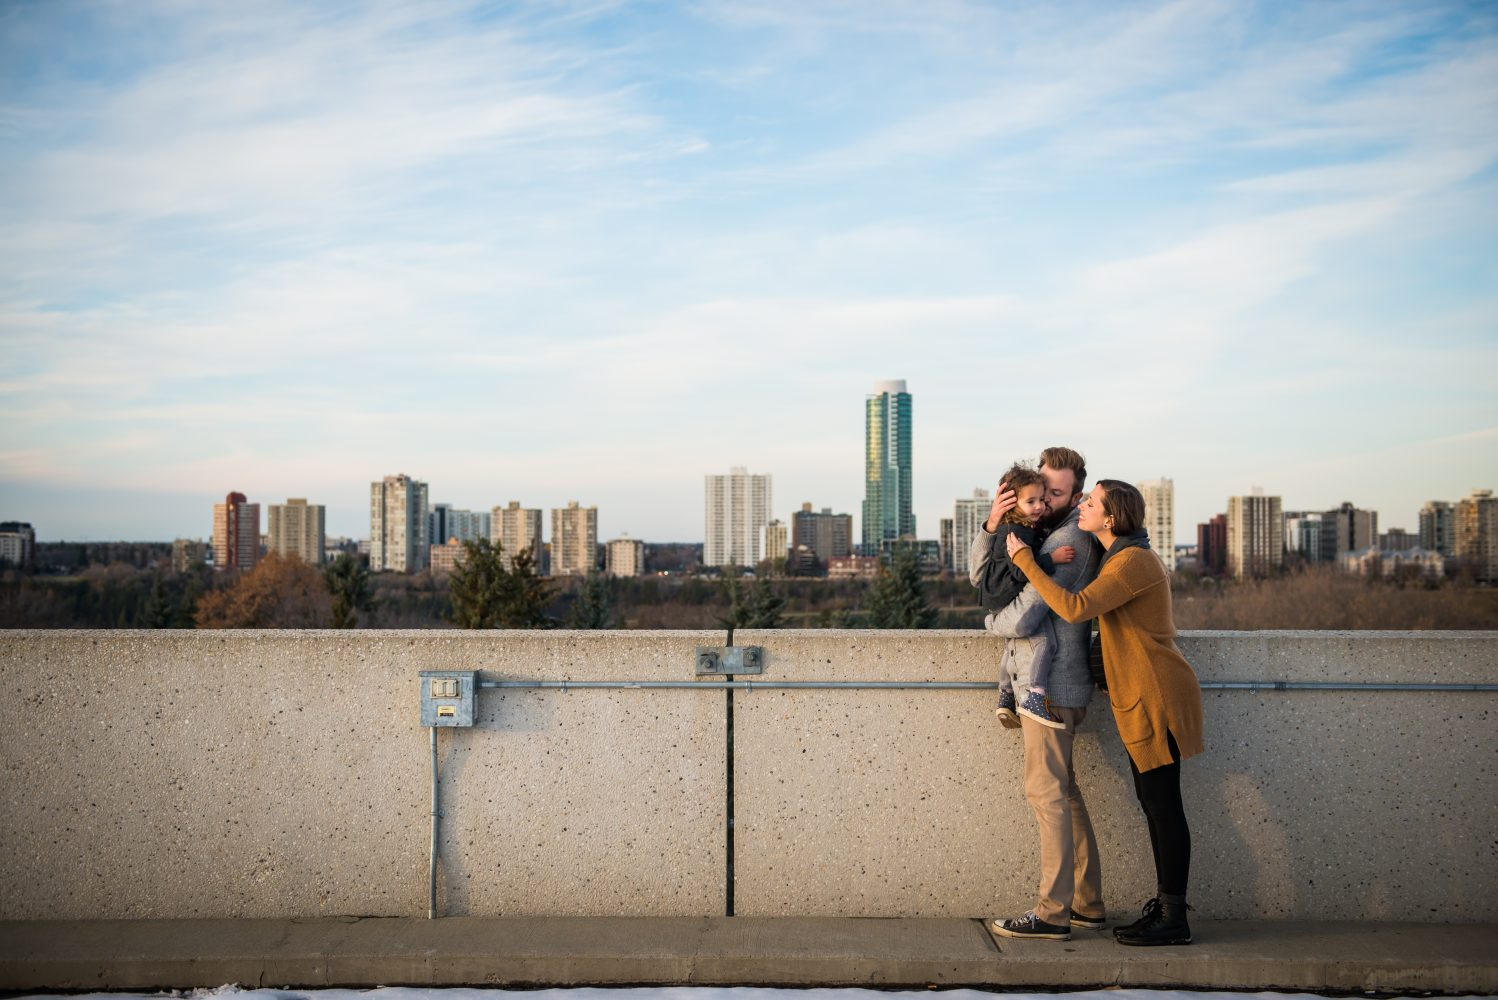 The Edmonton City Skyline and an adorable family photography session | 3Haus Photographics